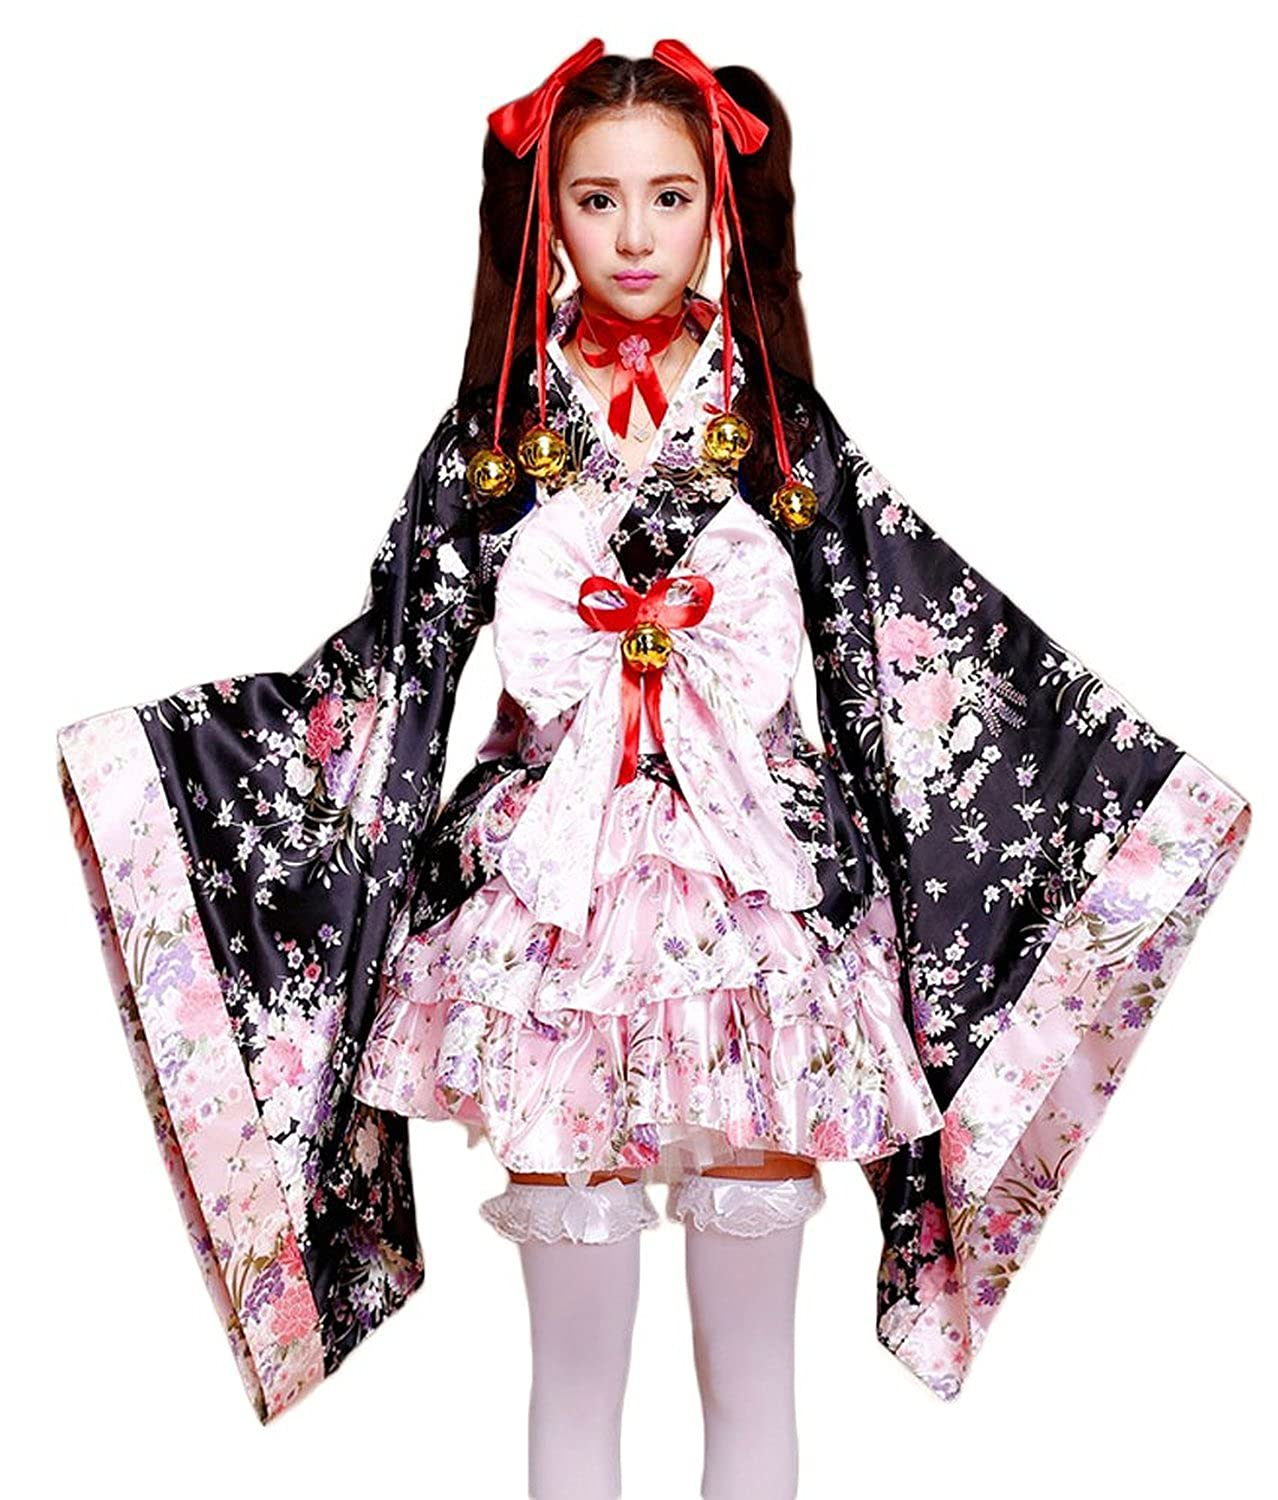 Amazon.com VSVO Anime Cosplay Lolita Halloween Fancy Dress Japanese Kimono Costume Clothing  sc 1 st  Amazon.com & Amazon.com: VSVO Anime Cosplay Lolita Halloween Fancy Dress Japanese ...